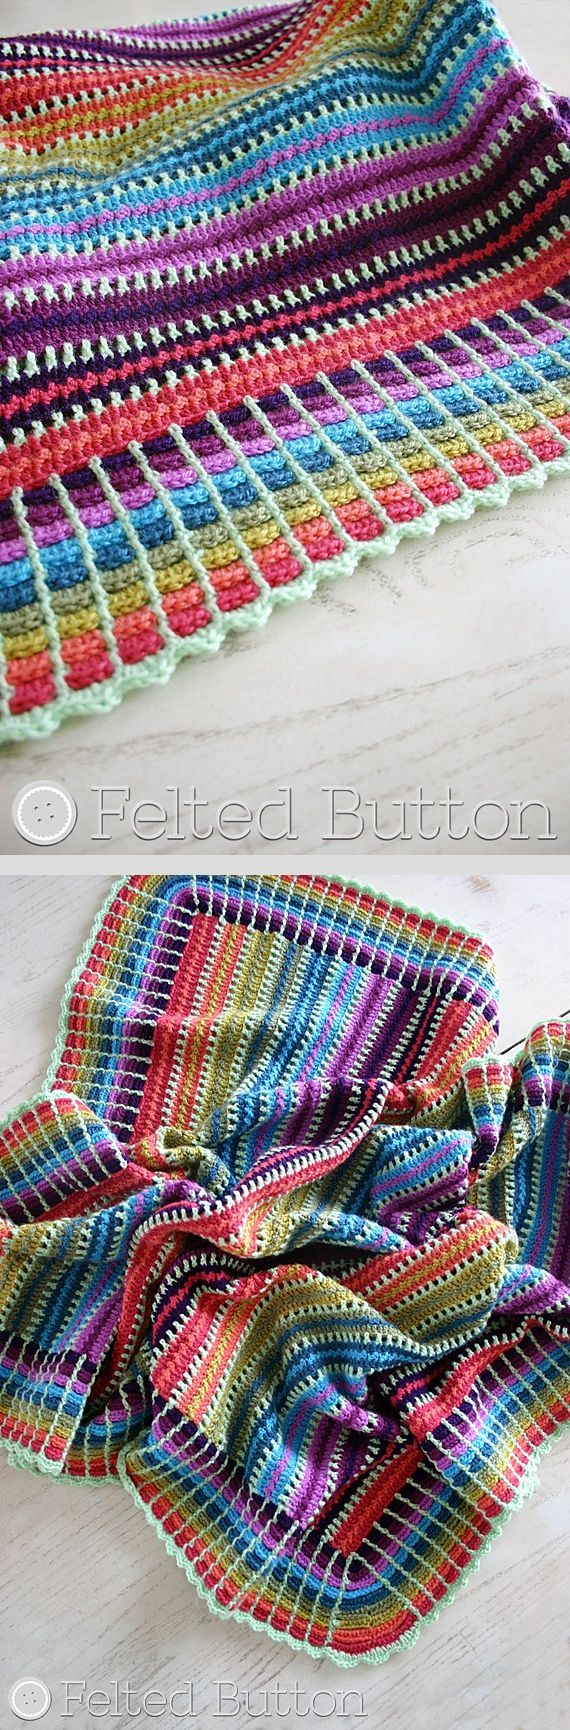 Skittles blanket, free pattern by Susan Carlson shown in photo using 10 colors…